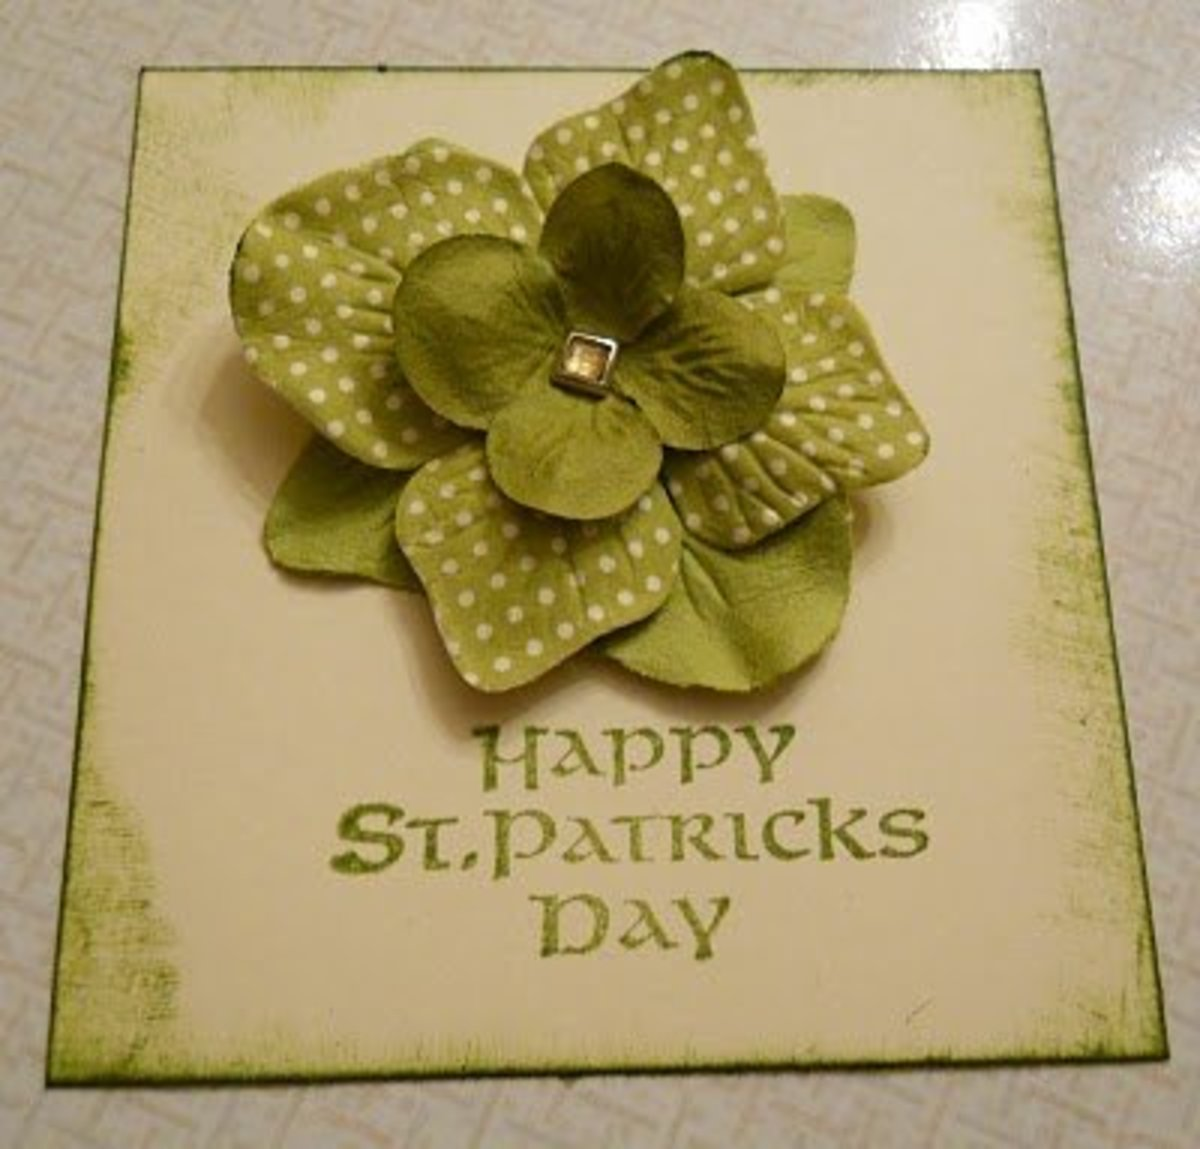 St. Patrick's Day Greeting Cards: Lots of Free Printables